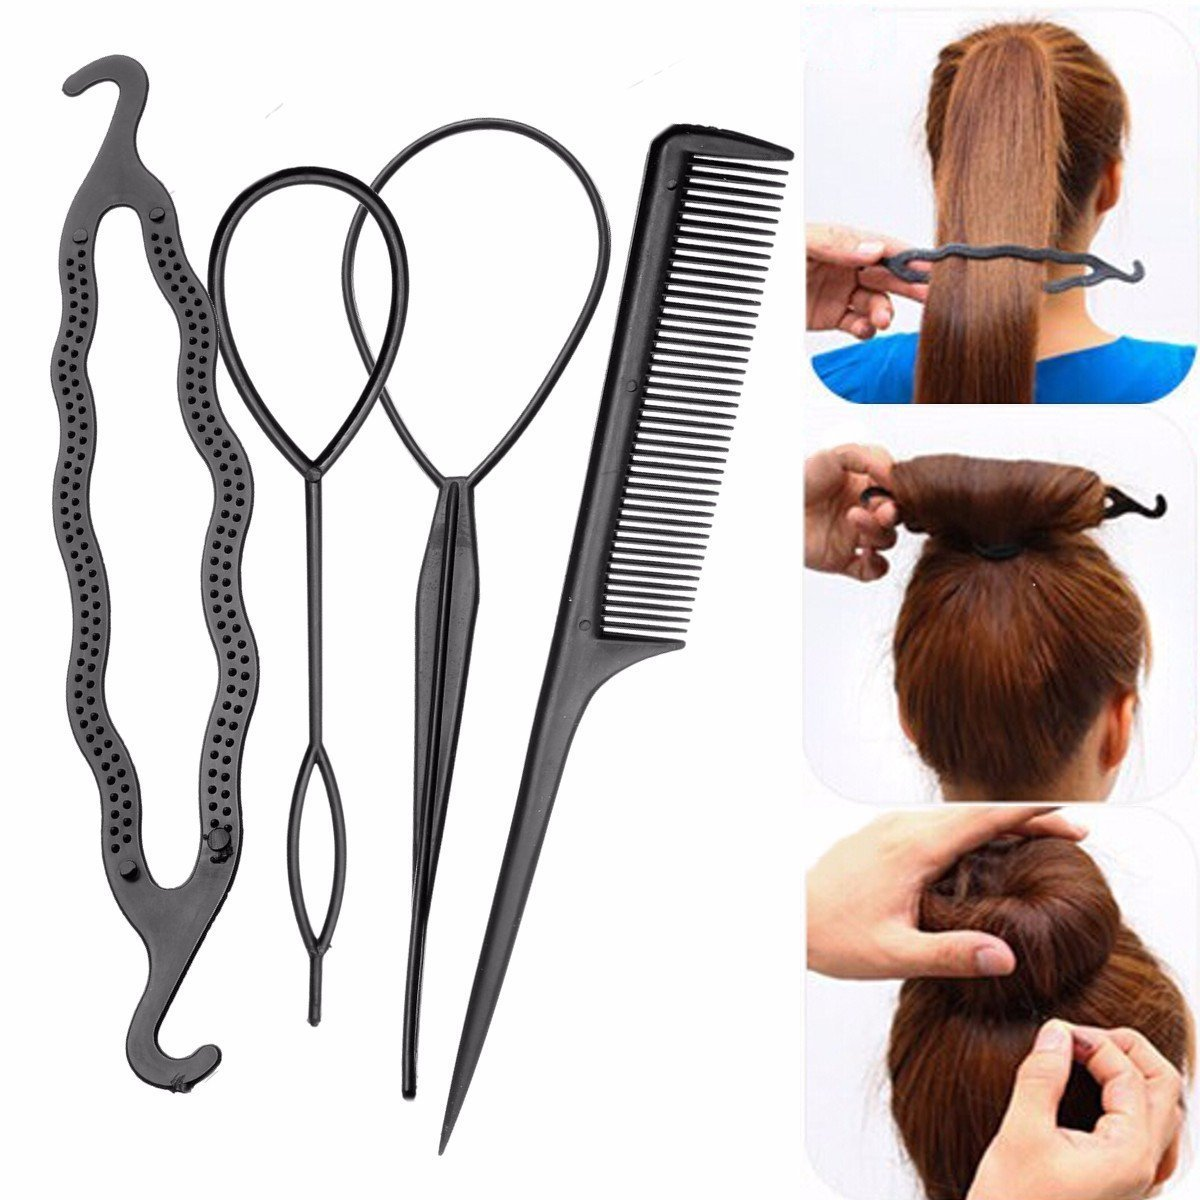 The Best Hair Braid Tool Twist Styling Clip Stick Bun Maker Comb Pictures